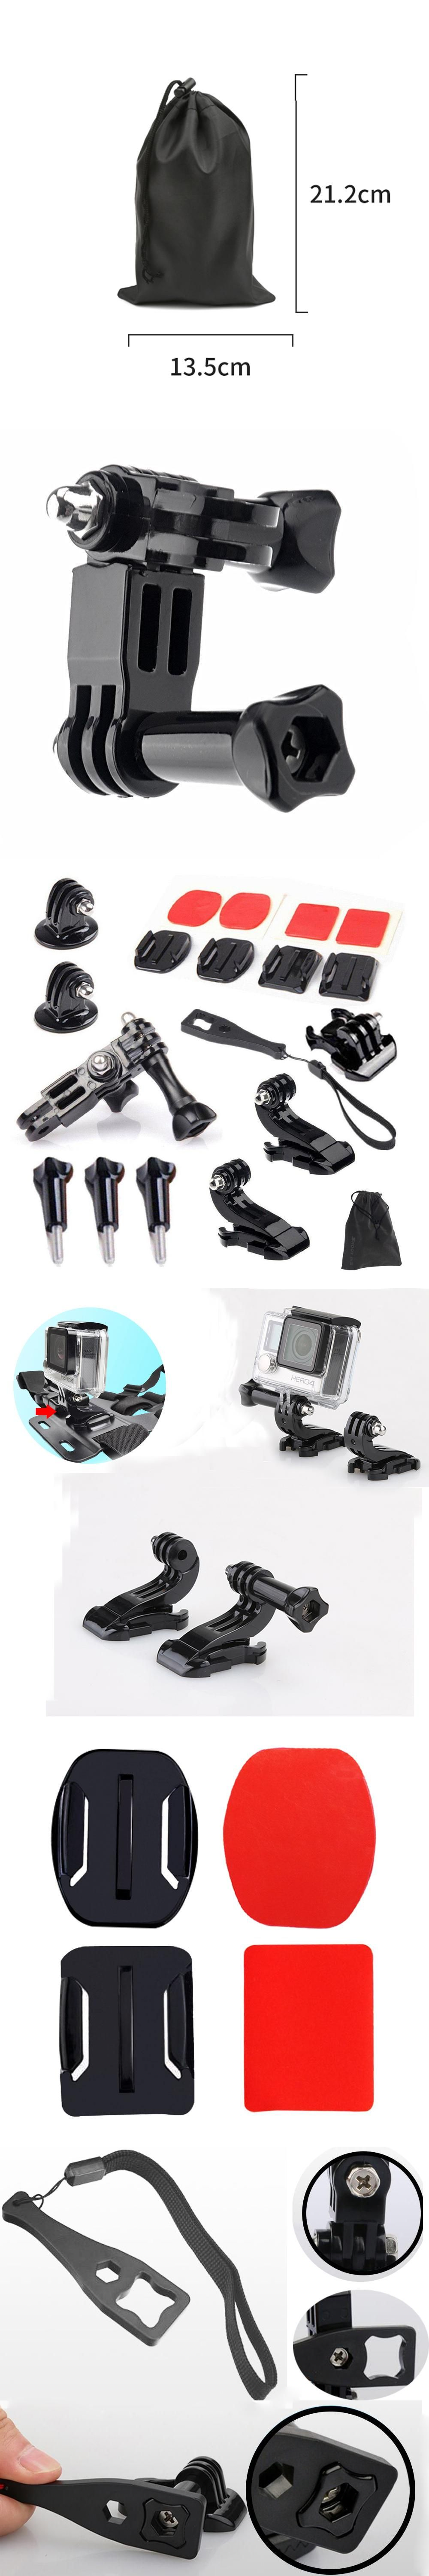 Gopro Accessories Set Kits Quick Base Adapter 3 Way Arm Tripod Mount for SJCAM SJ4000 SJ6000